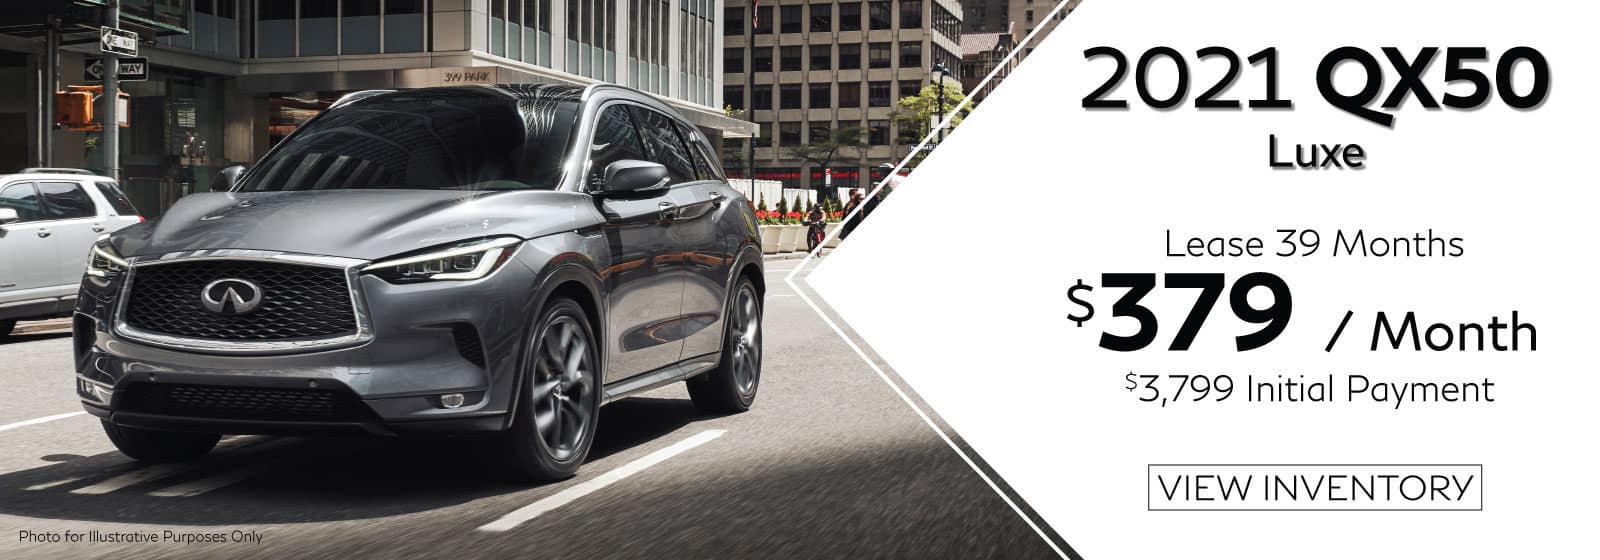 VIN 3PCAJ5BA1MF101933. Well-qualified lessees lease a new 2021 QX50 LUXE in retailer stock for $379/Month for 39 months. $3,799 initial payment excludes taxes, title, and license. $3,799 due at lease signing (includes down payment). Offer valid only when financed through INFINITI Financial Services. Subject to residency restrictions. $42,625 MSRP includes destination and handling charge. Net capitalized cost of $34,492 includes a $700 non-refundable acquisition fee. Retailer contribution may affect actual price set by retailer. Monthly payments total $14,781 at lease end, purchase for $23,444, plus purchase option fee up to $300 (except KS & WI), plus tax, or pay excess wear & use plus $0.25 per mile for mileage over 10,000 miles per year. Disposition fee due at lease end. No security deposit required. Must take delivery from new retailer stock. Ends 06/01/2021